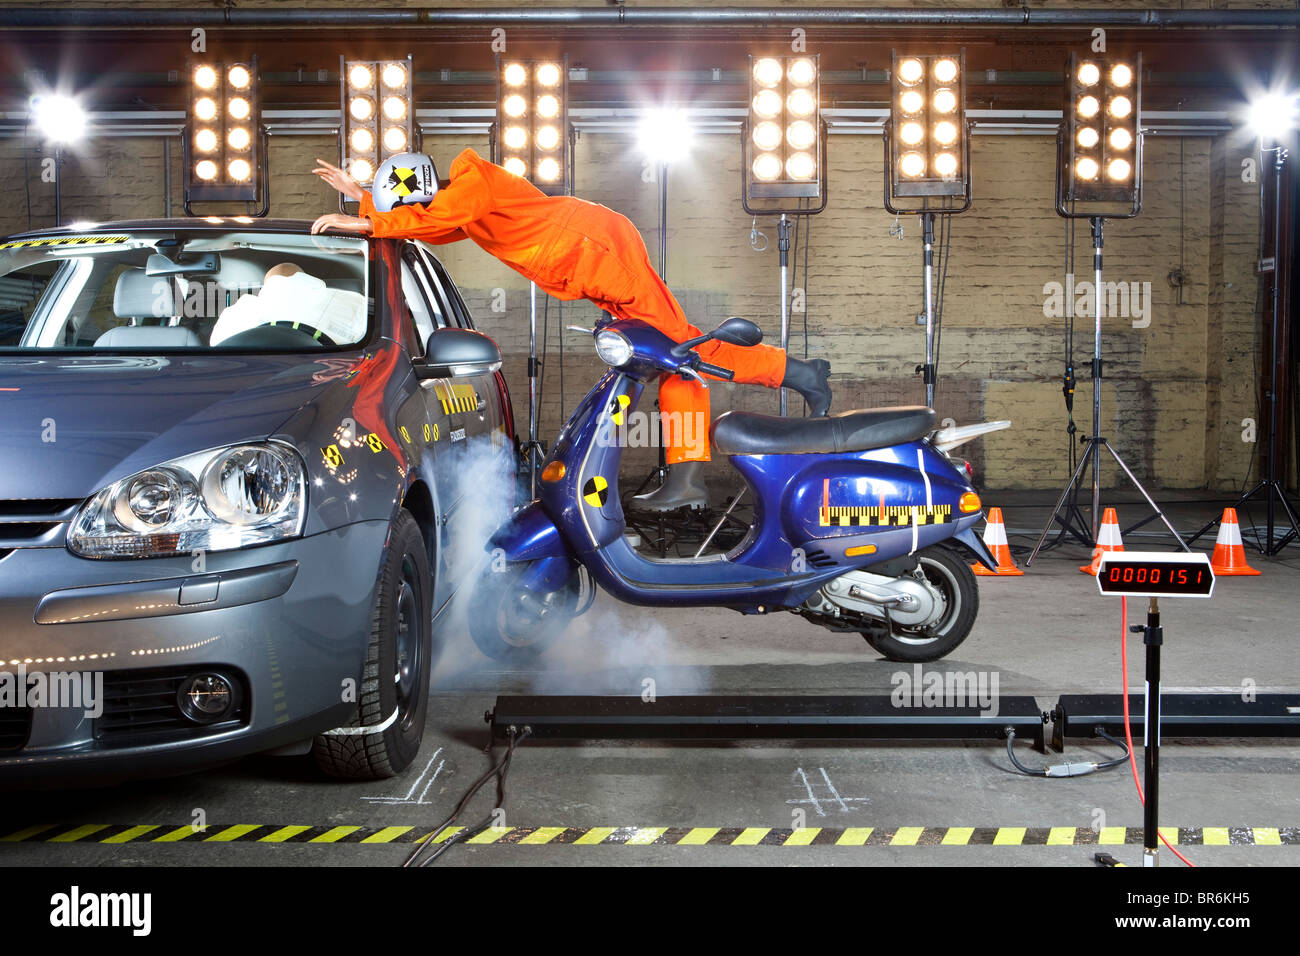 A crash test dummy on a scooter crashing into a car Stock